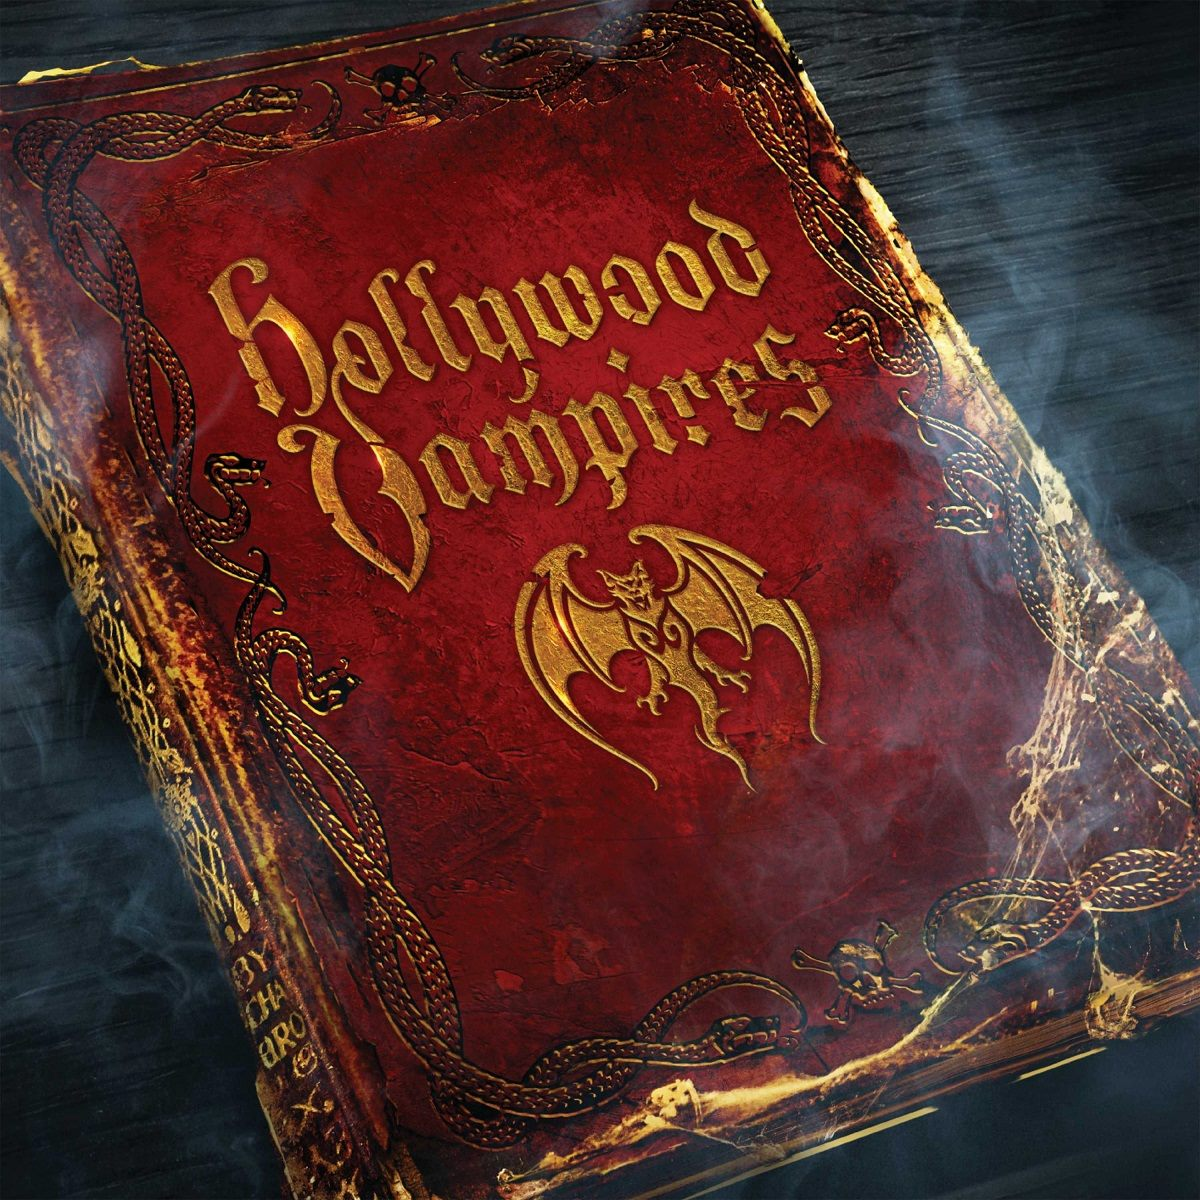 The Hollywood Vampires album is out now!